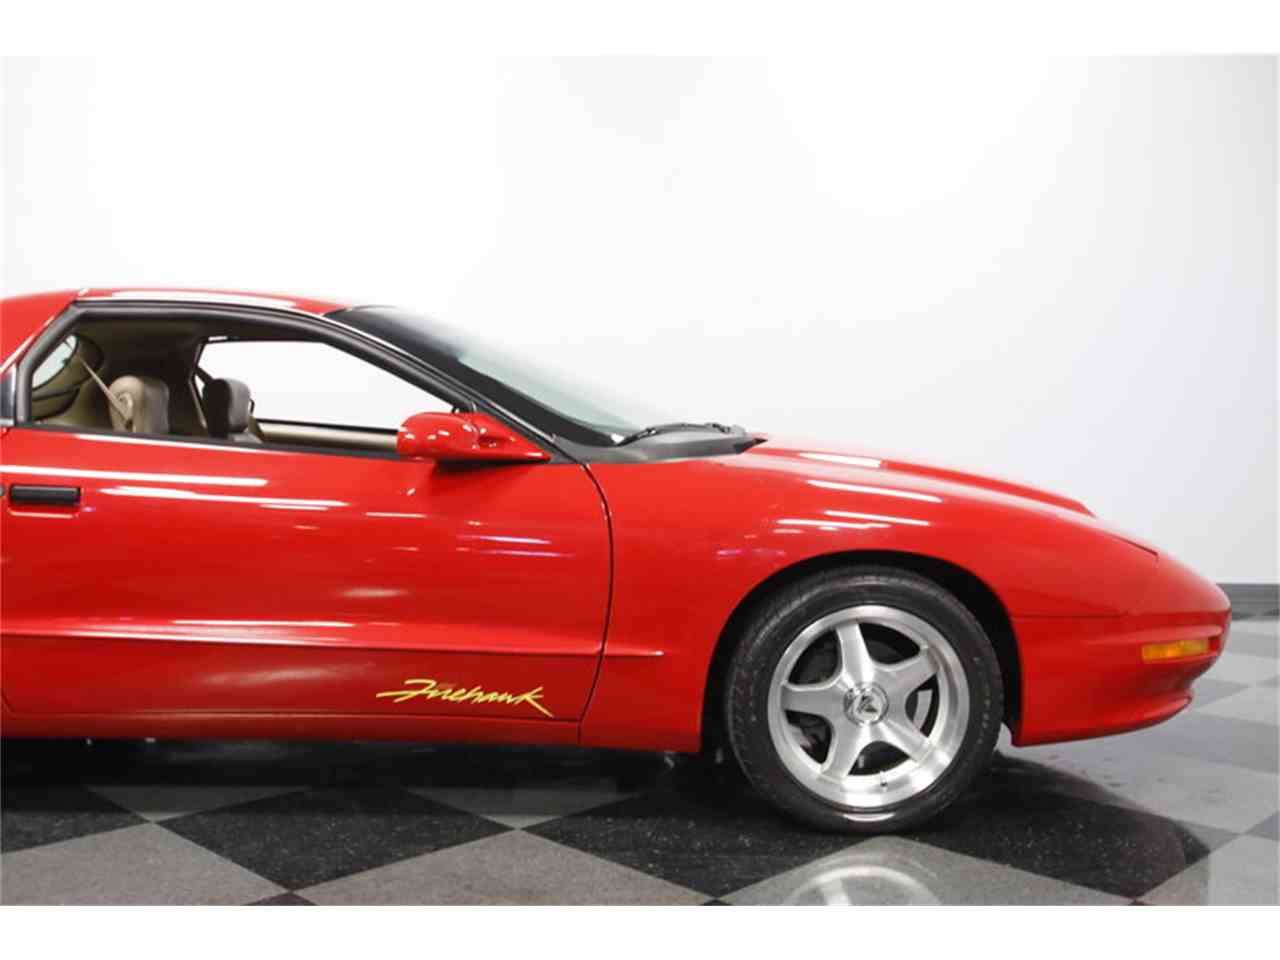 Large Picture of '93 Firebird - $15,995.00 - MZJM